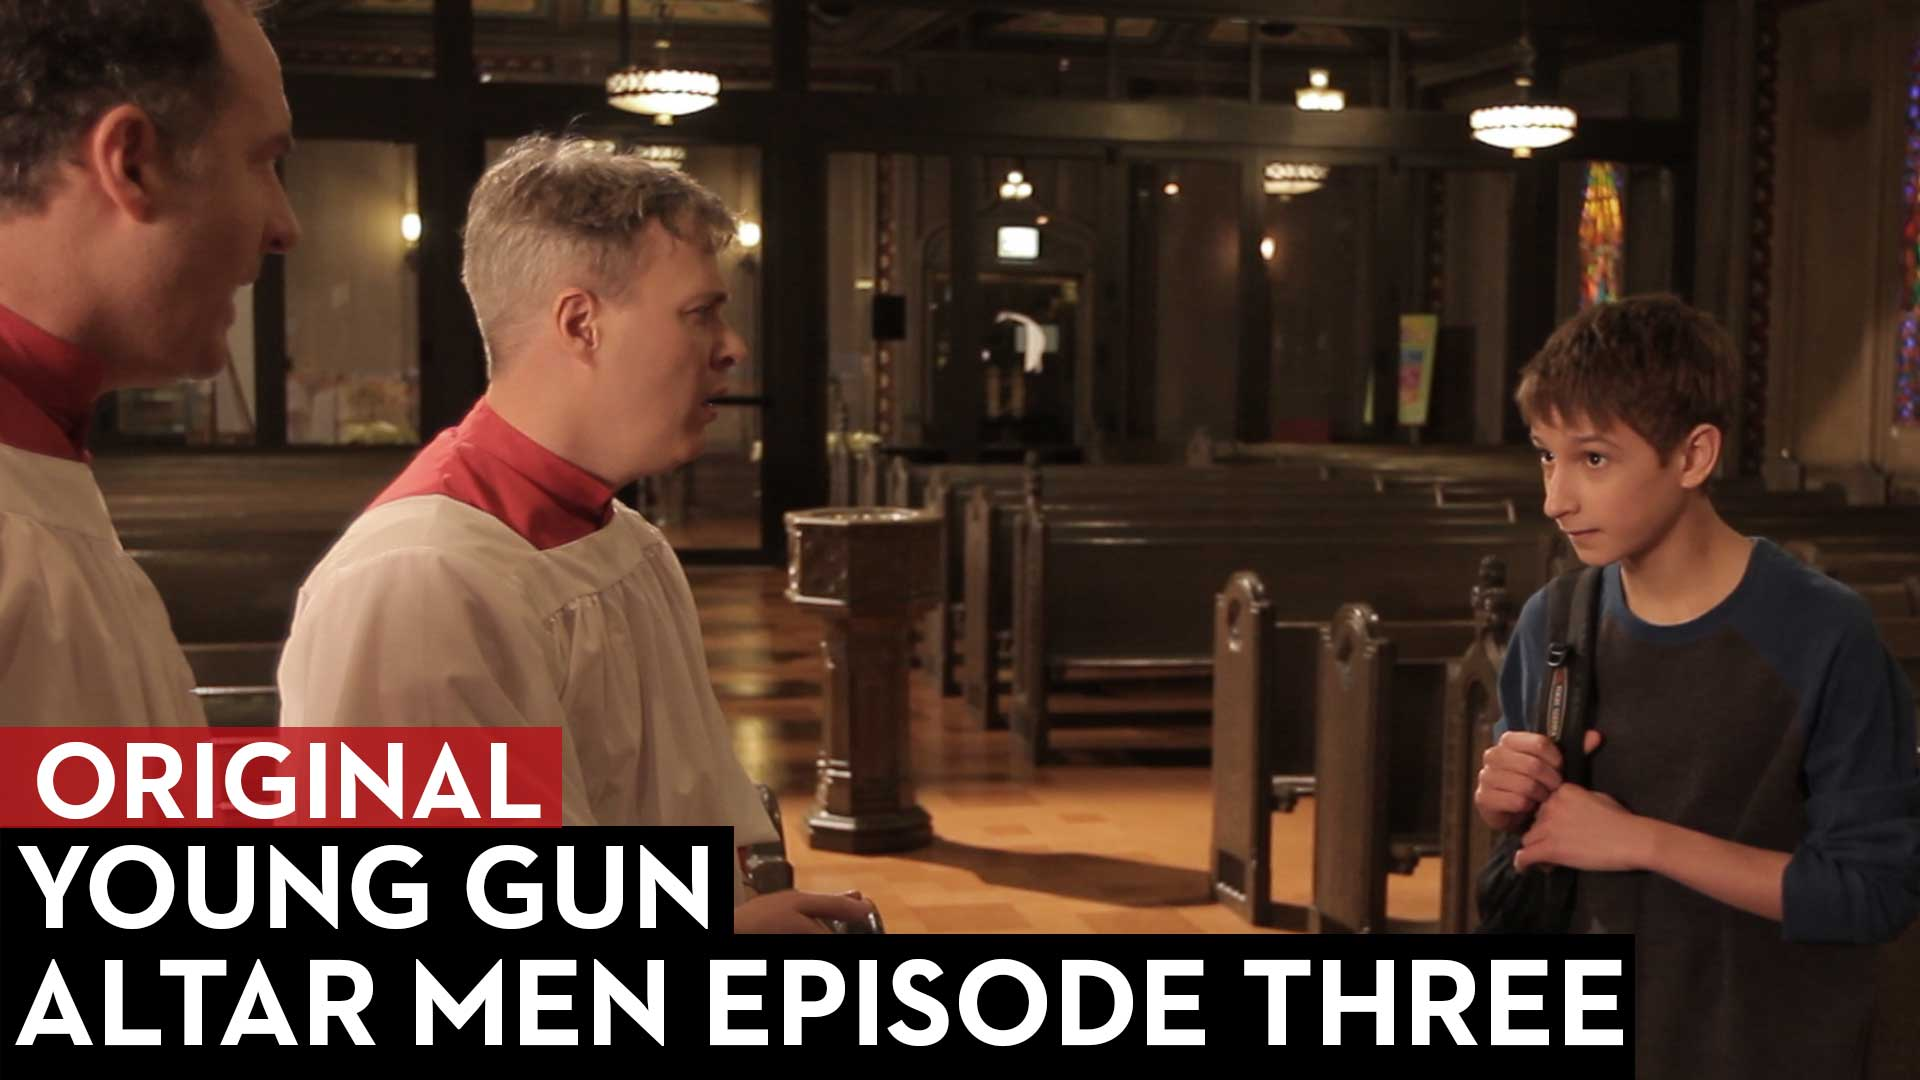 Young Gun: Altar Men Episode 3